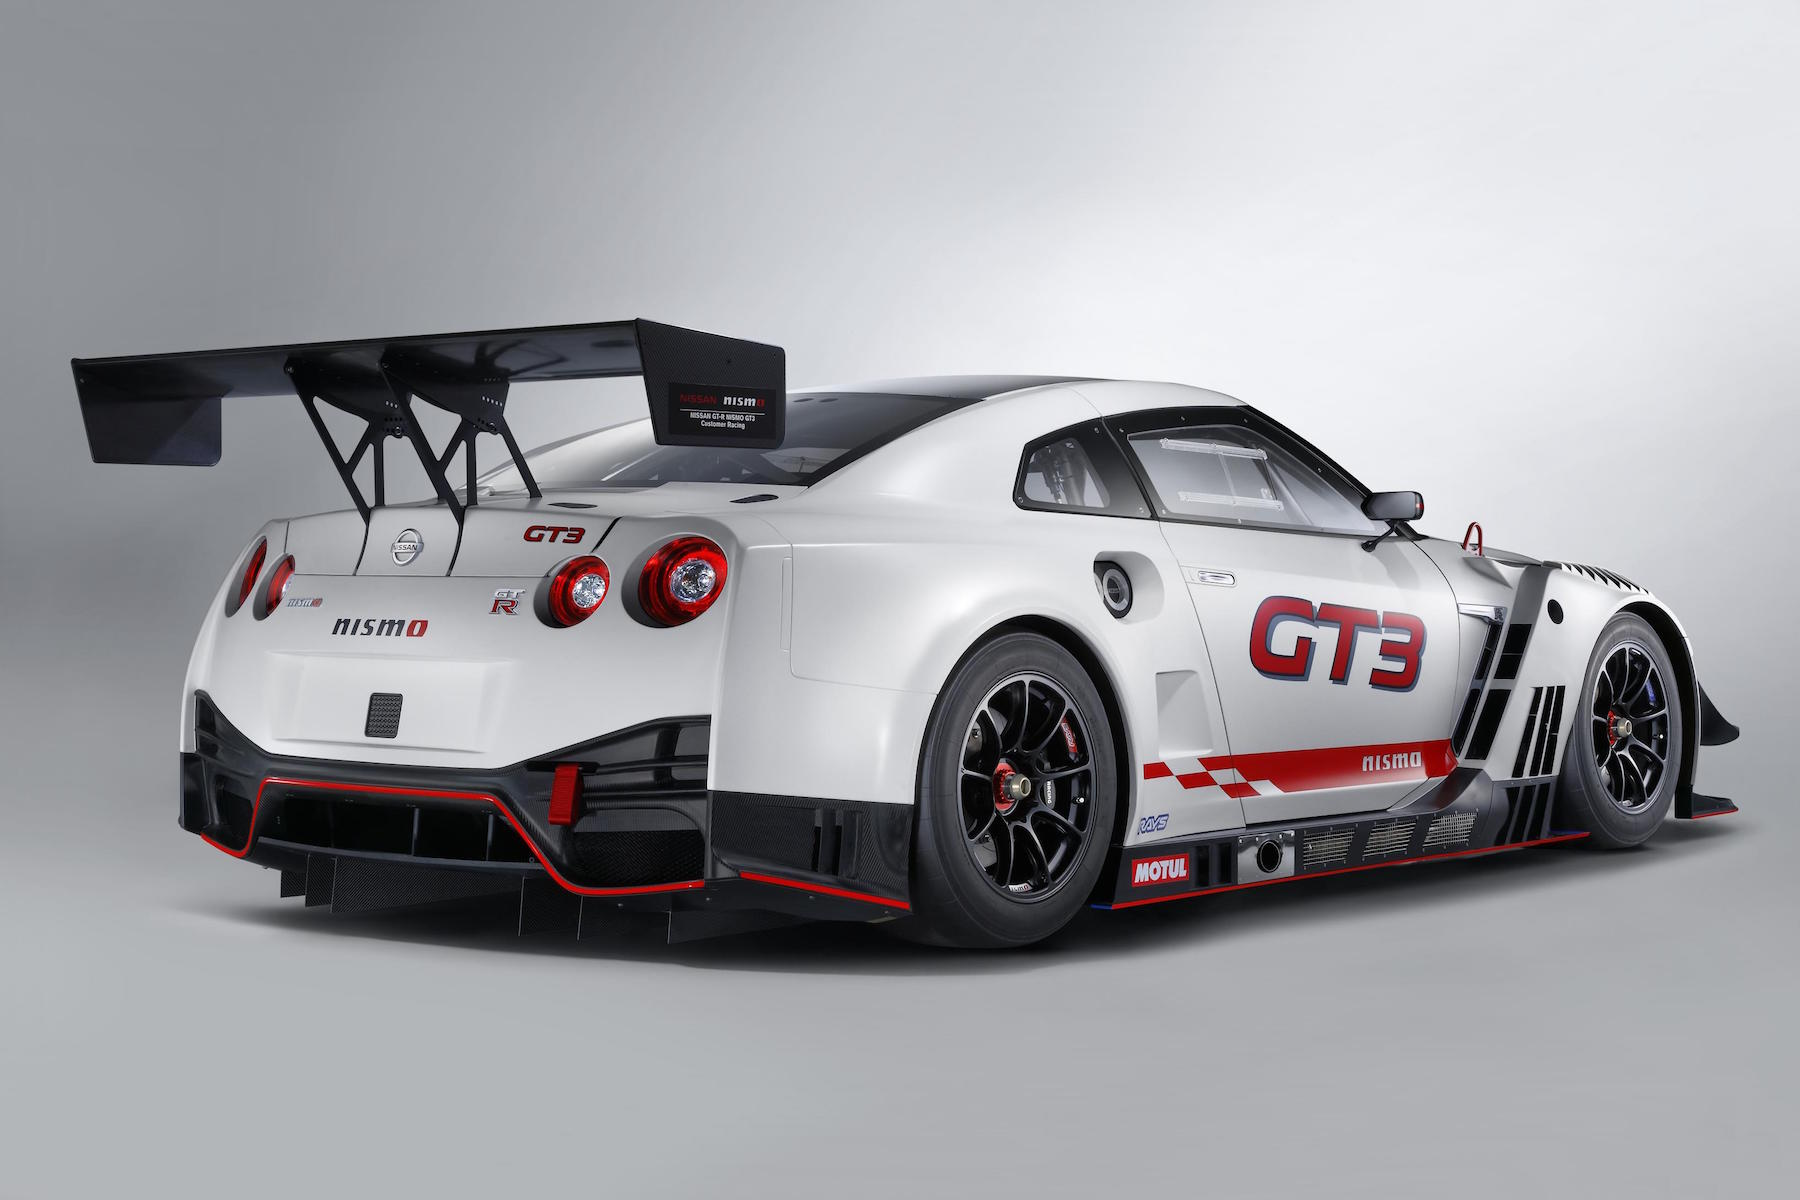 new nissan gt r nismo gt3 racer has an air conditioned seat motoring research. Black Bedroom Furniture Sets. Home Design Ideas